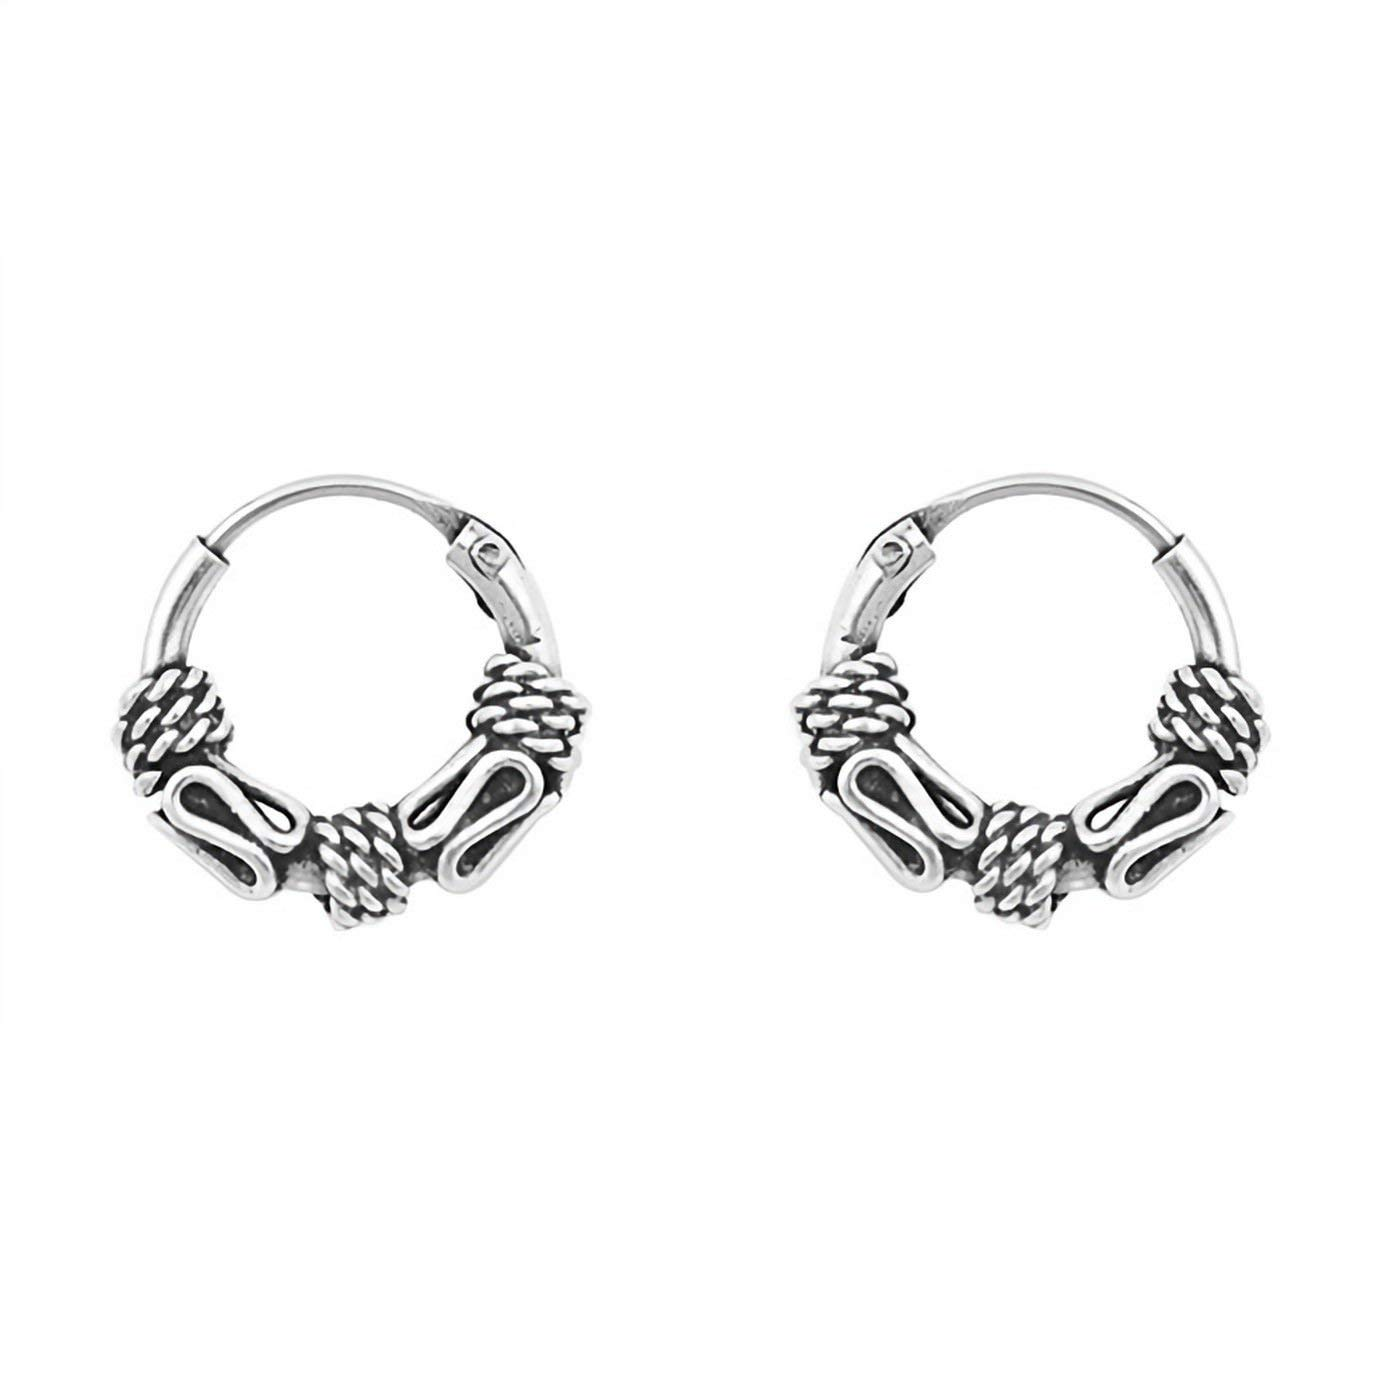 a4300ed3fc7a59 Get Quotations · Small 8mm Bali Endless Hoop Earrings 925 Sterling Silver  Women Antique Style Jewelry